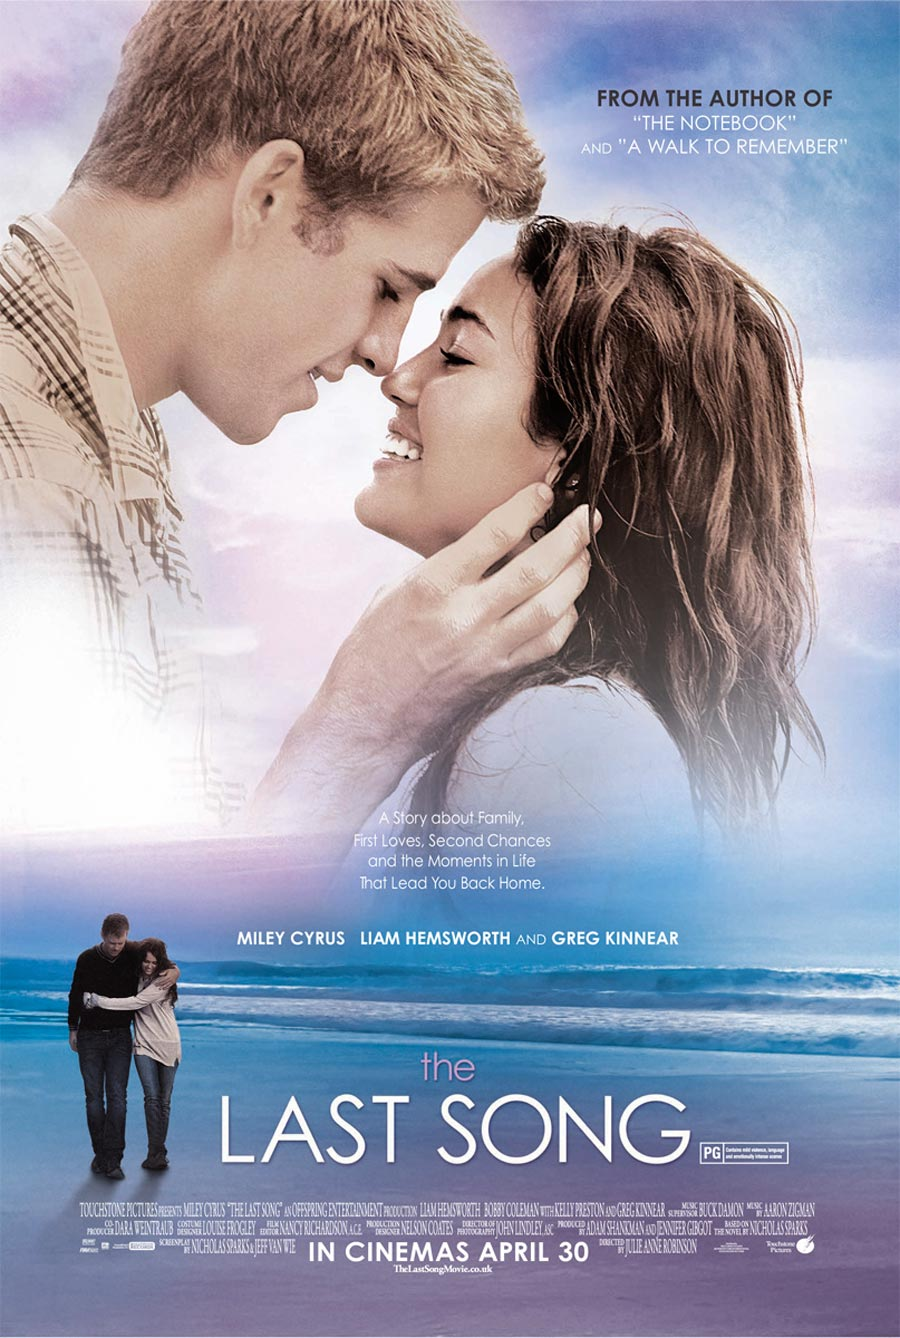 last song Don't think of the last song as a miley cyrus movie think of it as a nicholas  sparks chick flick he's the novelist/screenwriter who has given.